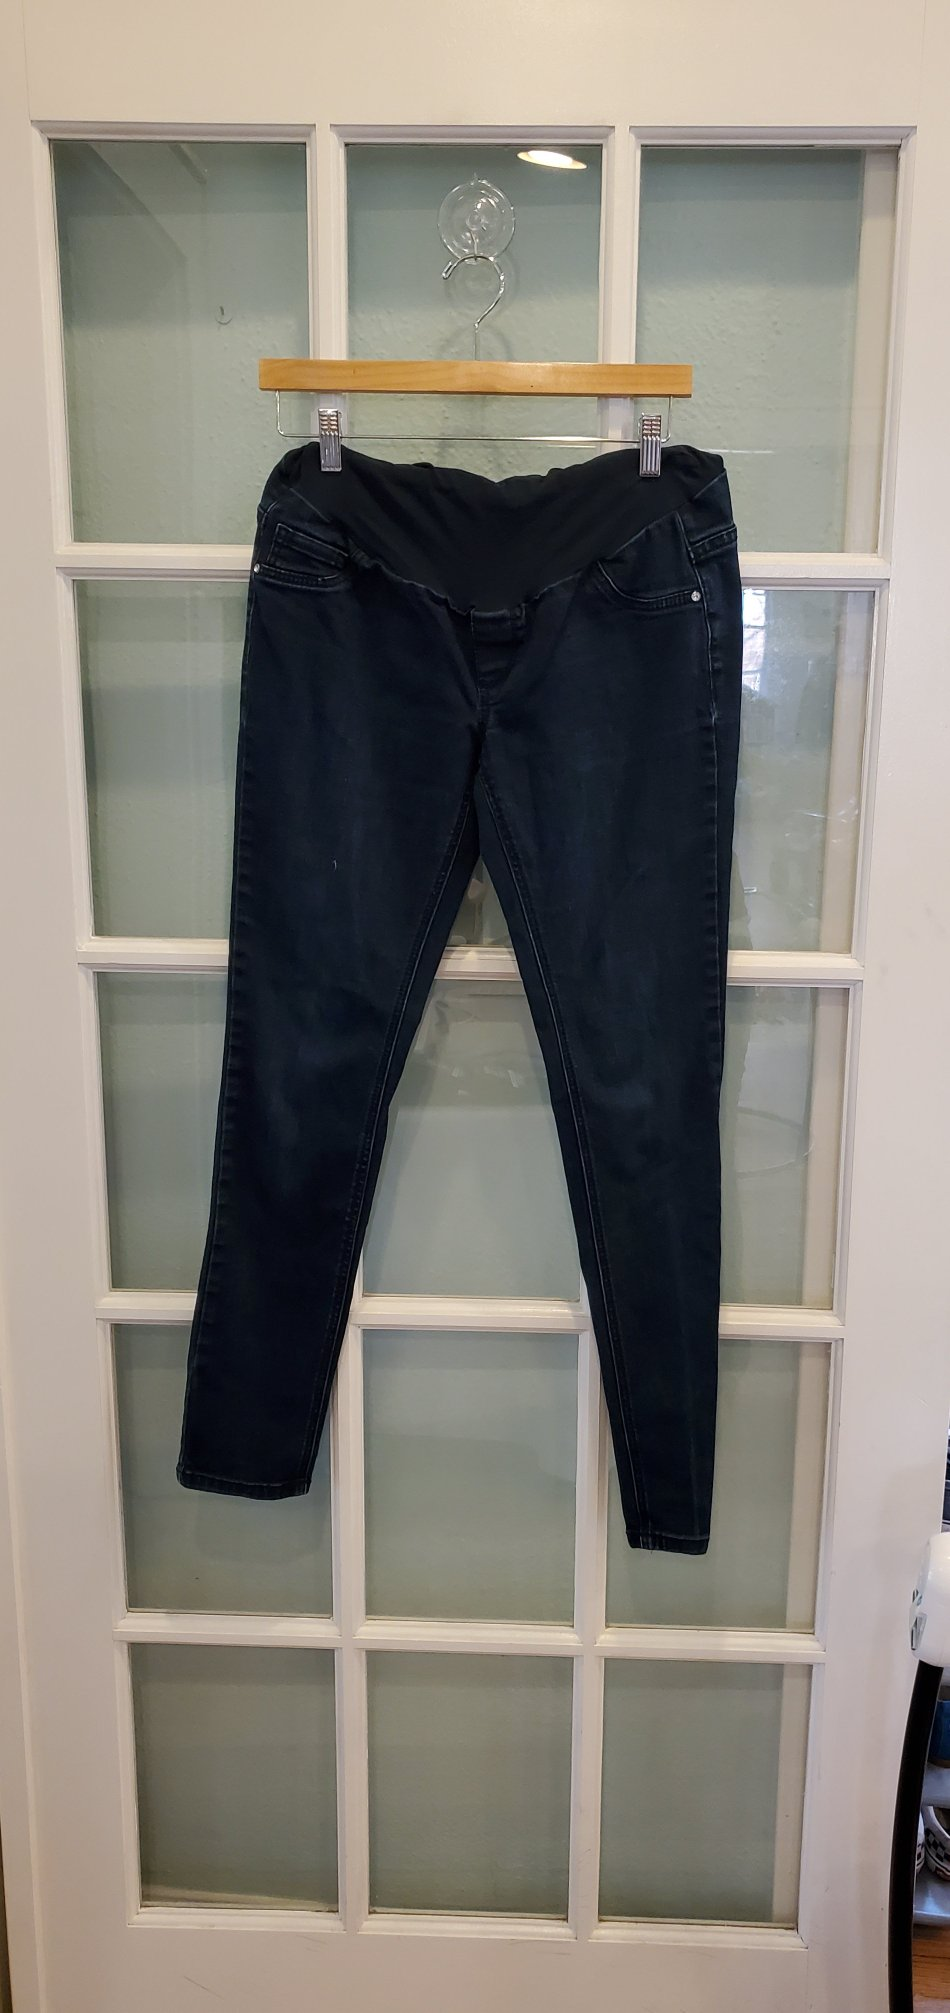 Resale Indigo Blue Maternity Ankle Jeans with Full Panel - Size Medium